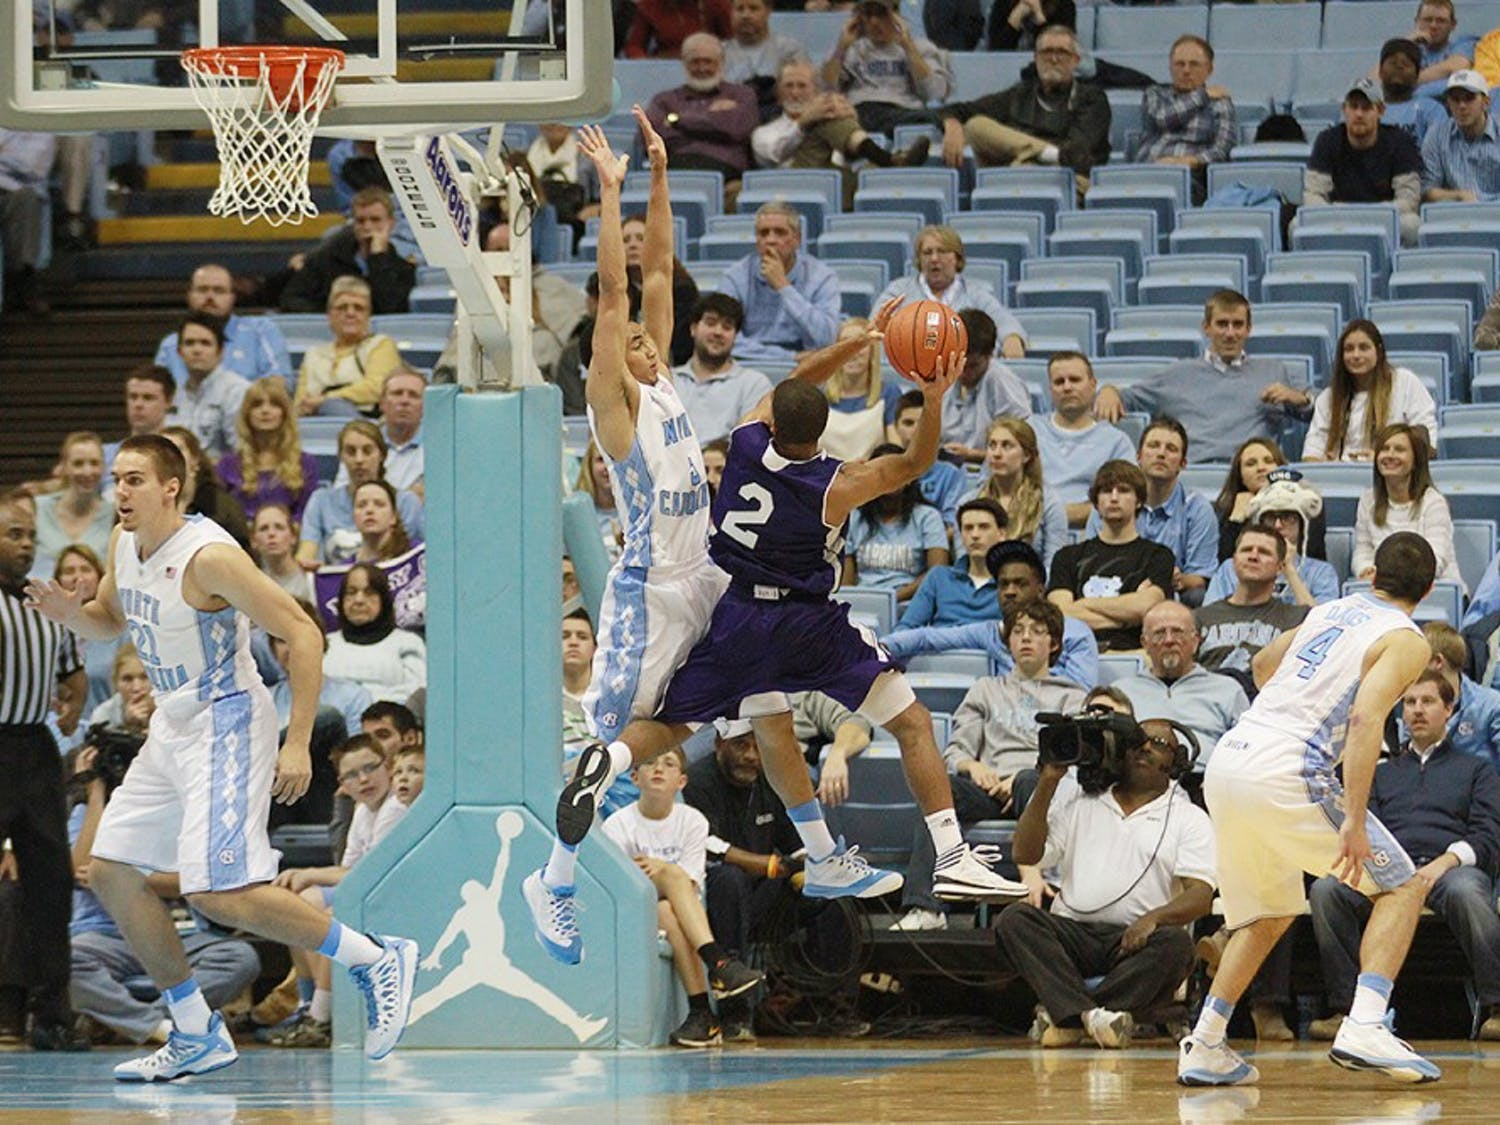 Photos from UNC Men's Basketball's game against Holy Cross on November 15th, 2013 at Dean Smith Center in Chapel Hill, N.C.